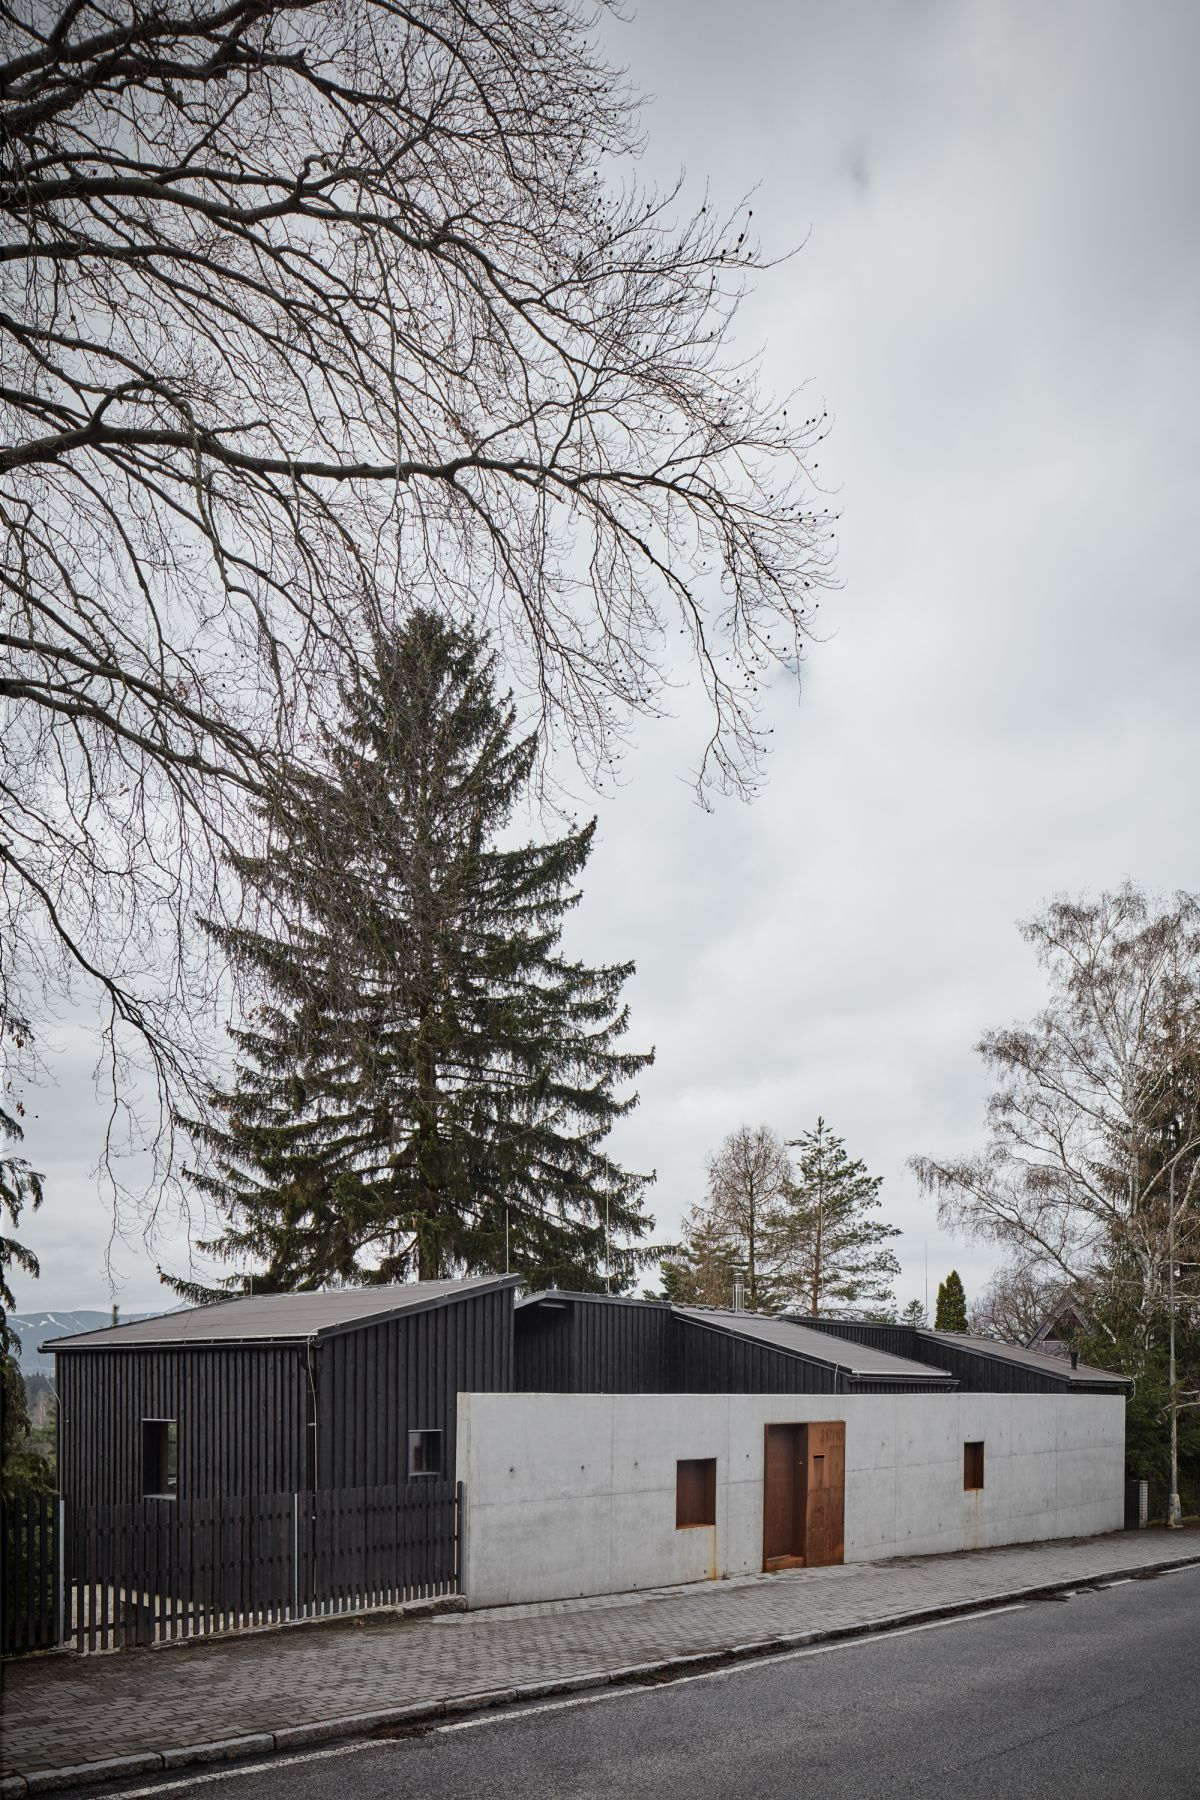 A concrete wall acts as a shield between the house and the road which borders it